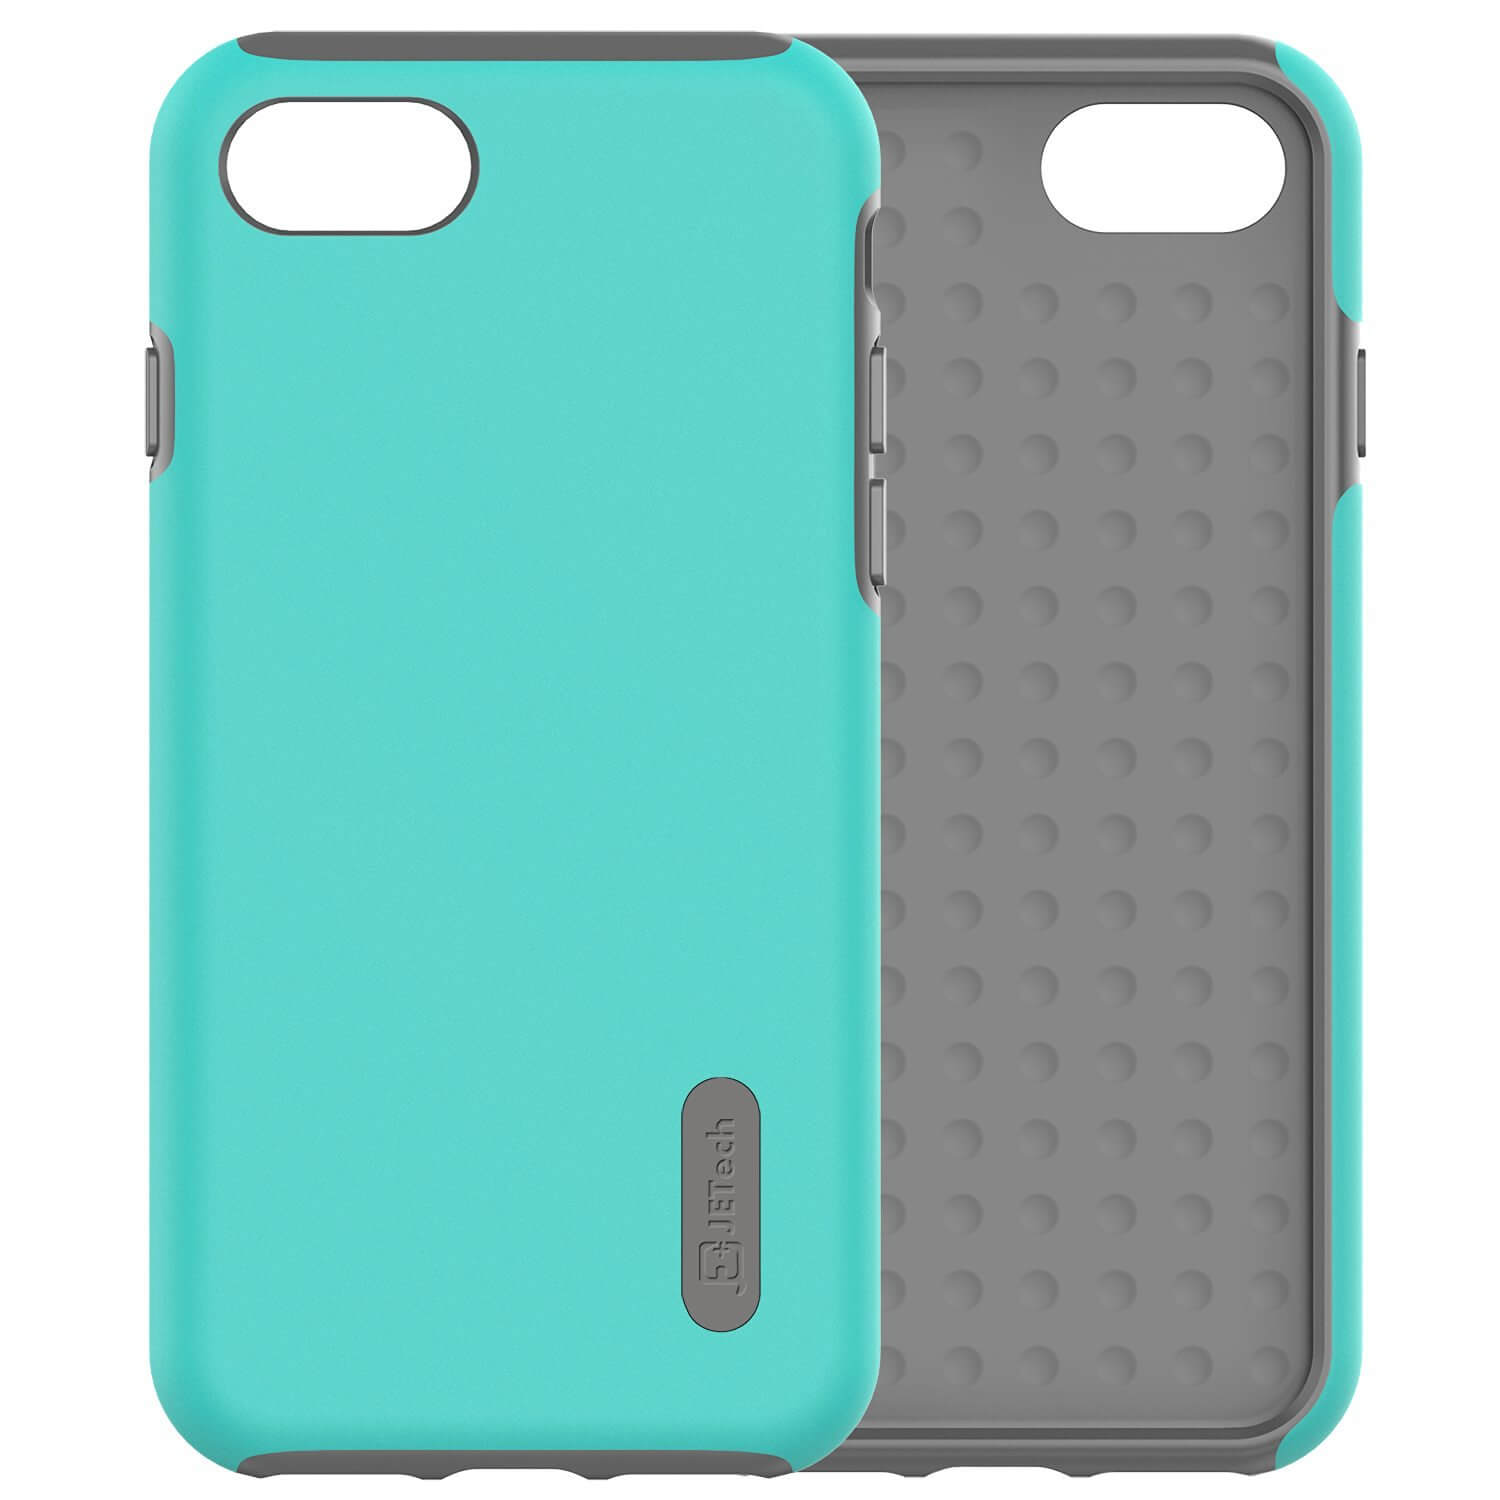 Case Design cell phone case cover : Best Apple iPhone 7 Cases - Complete Protection For Your Phone